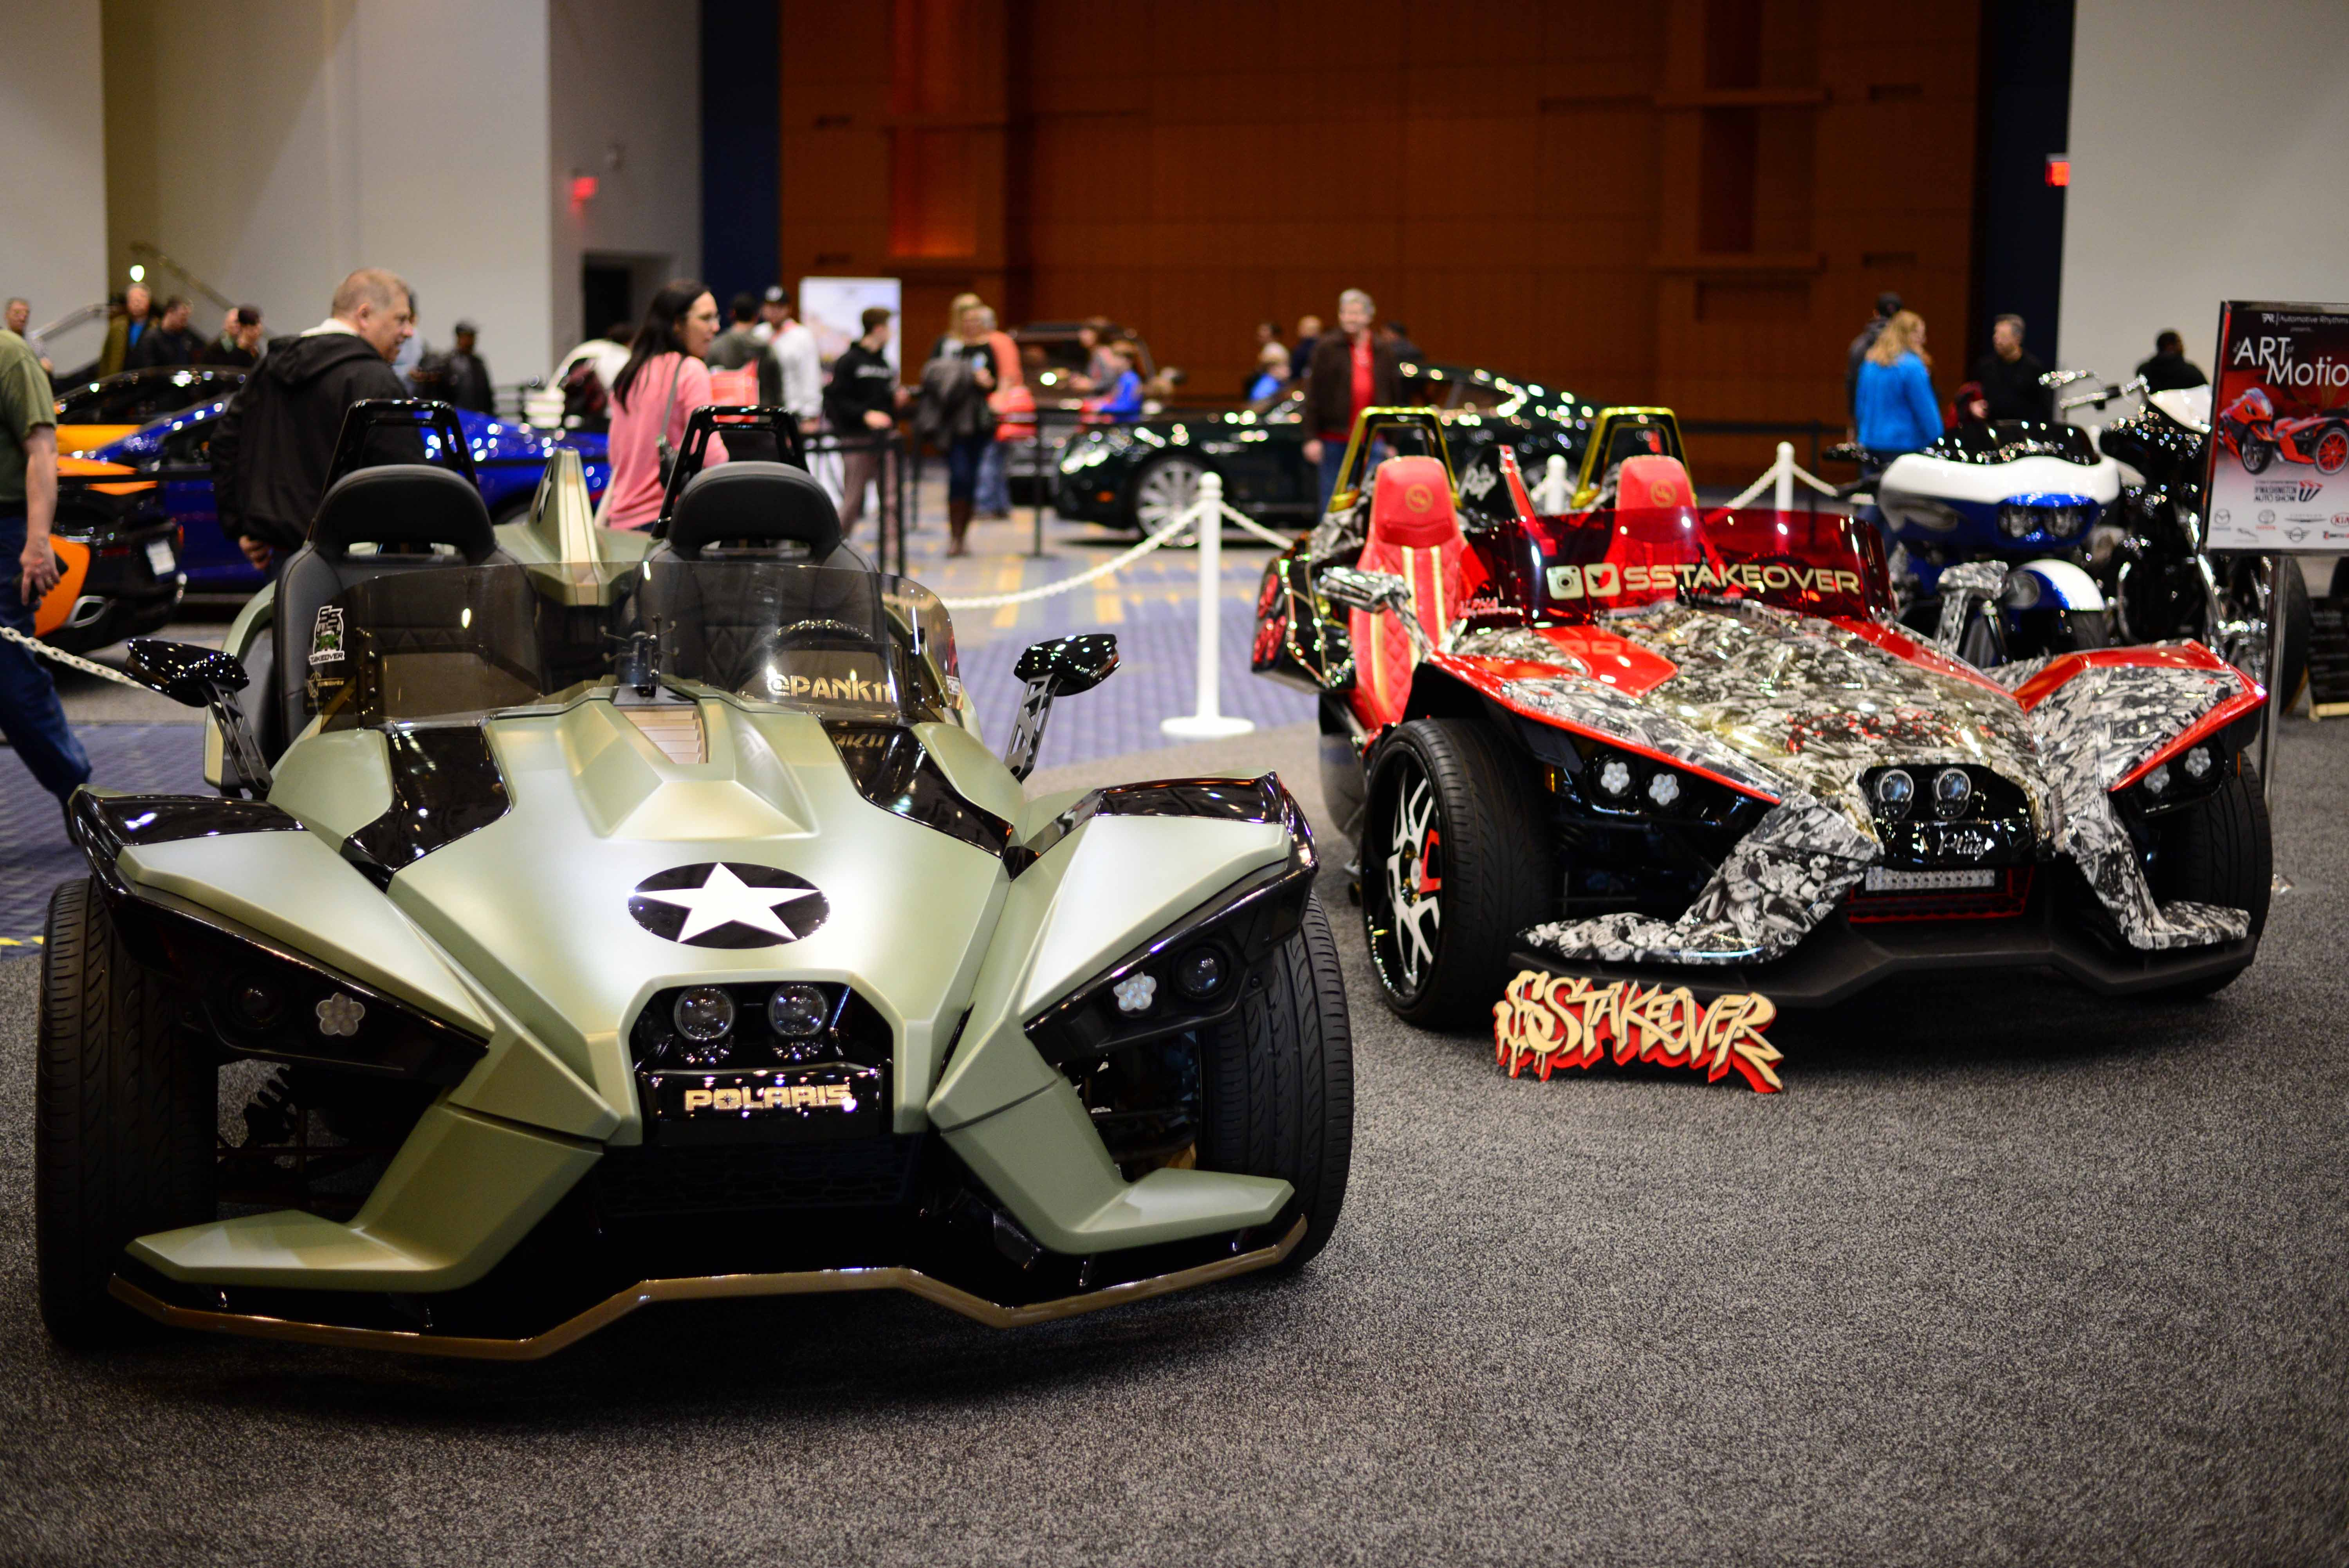 Washington Auto Show The Public Policy Show Champagne In The - Washington car show discount tickets